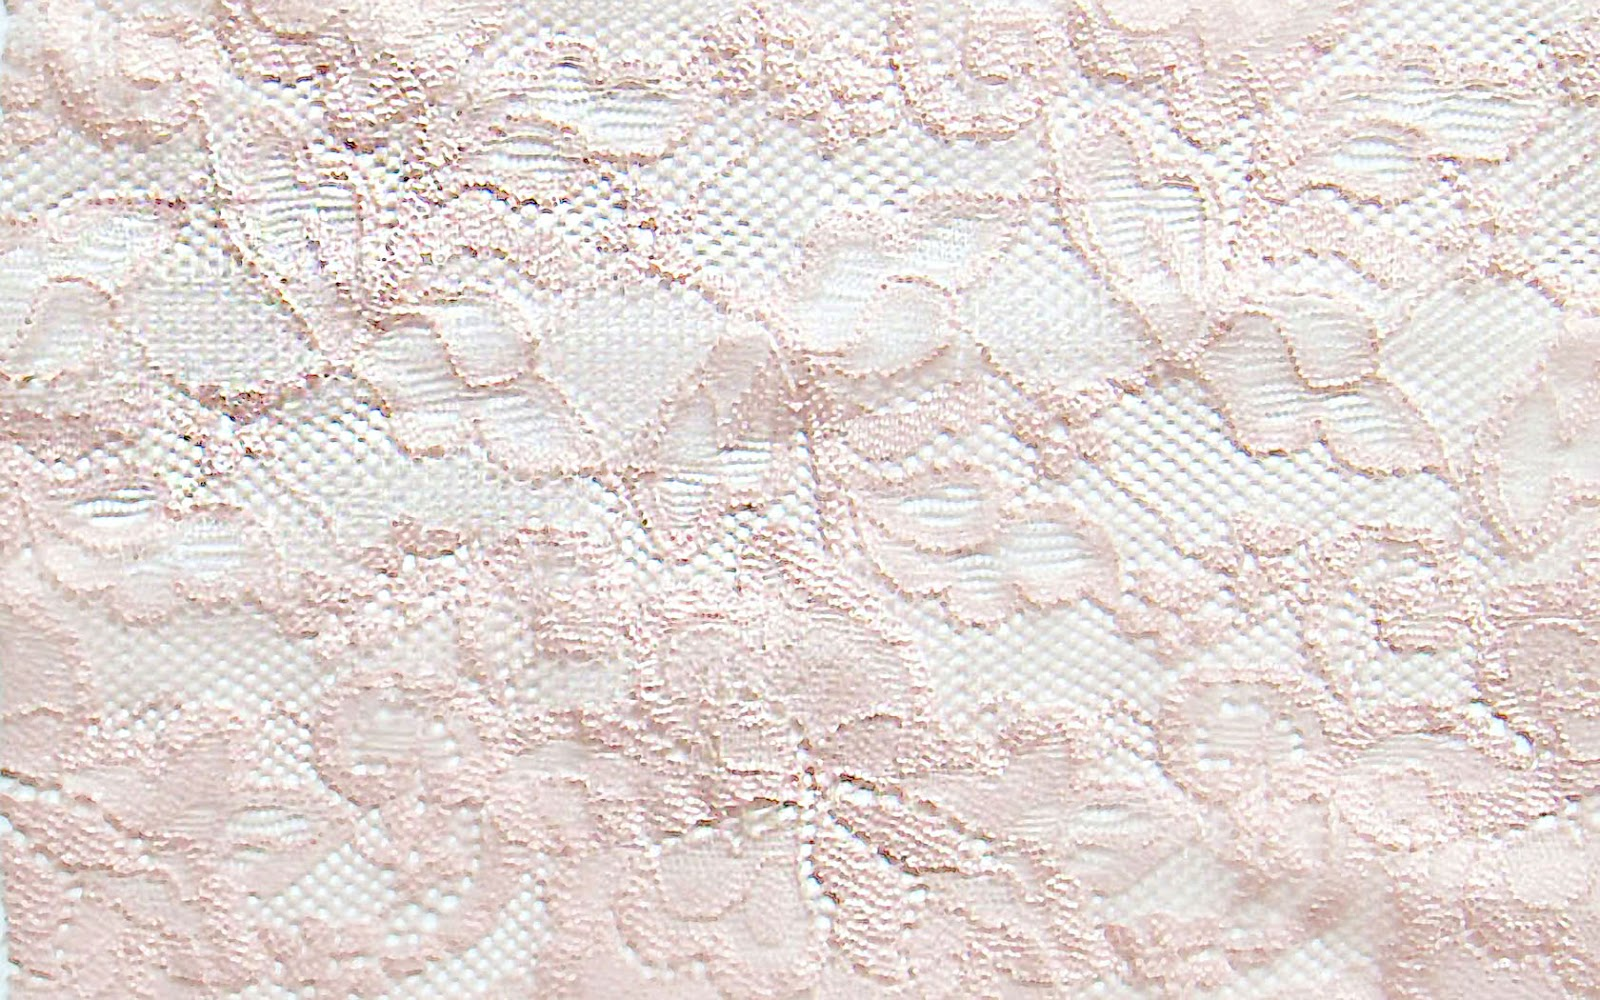 11 free lace tumblr backgrounds